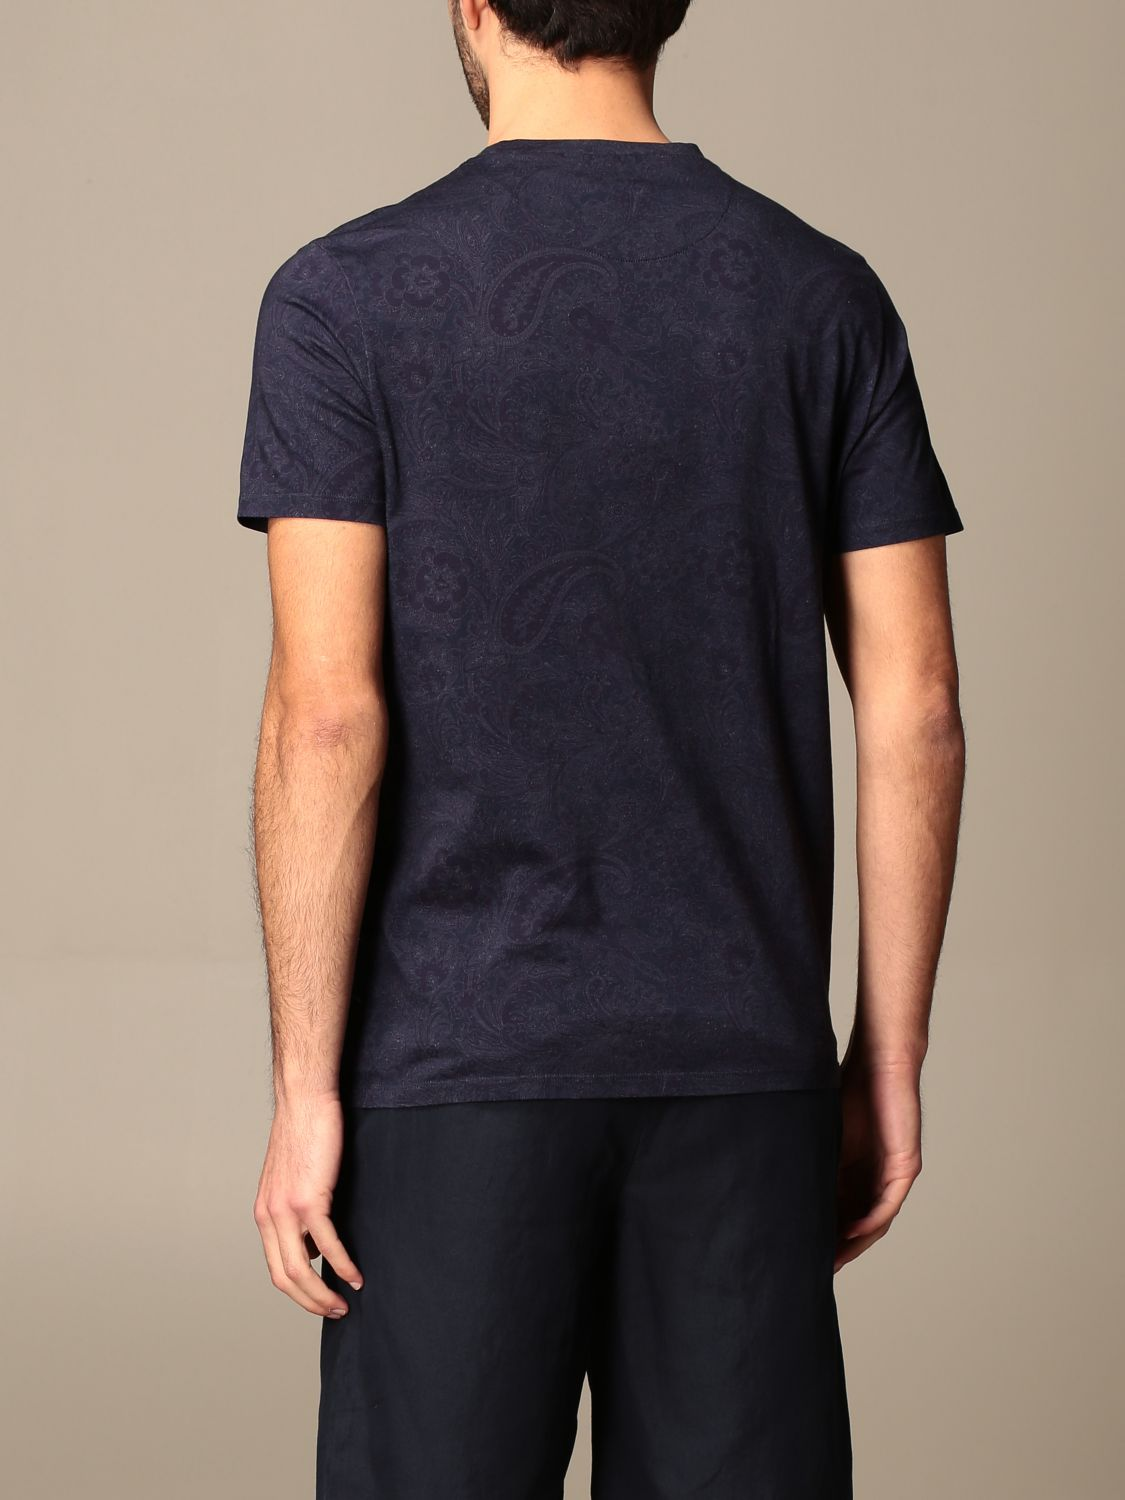 T-shirt Etro: Etro t-shirt in paisley patterned cotton with Pegasus gnawed blue 3